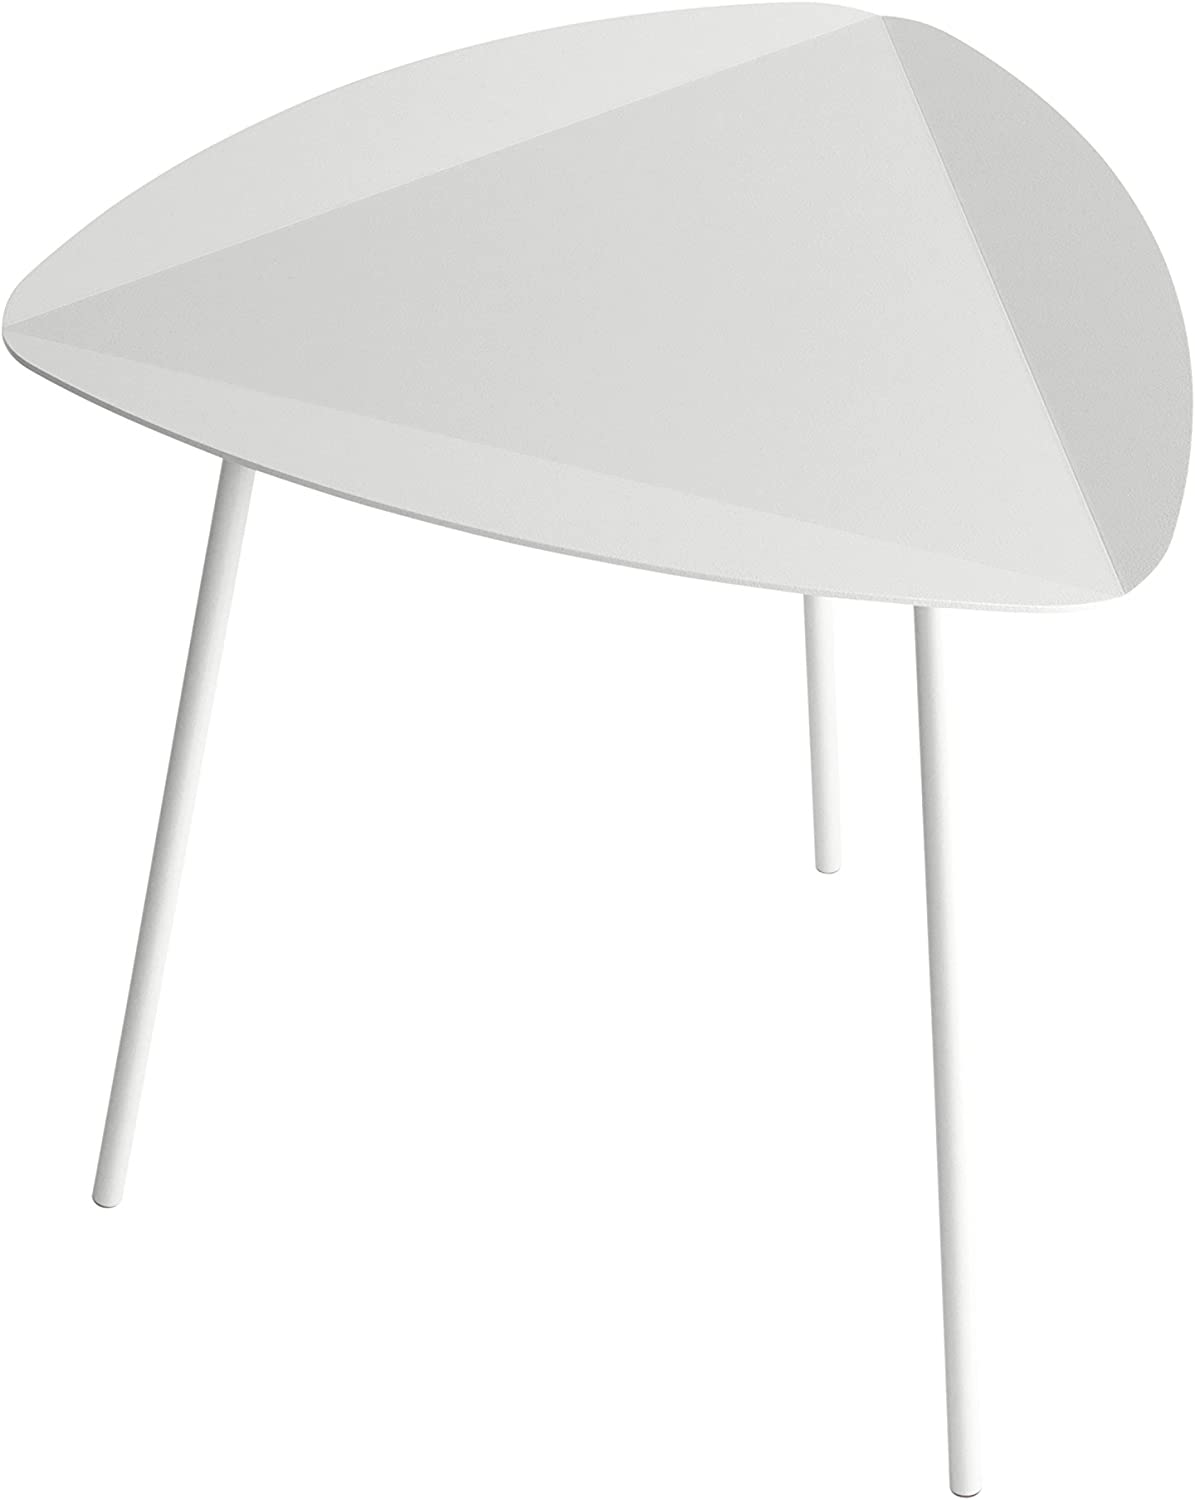 Joval Leito Triangle 40 Side Table, 40